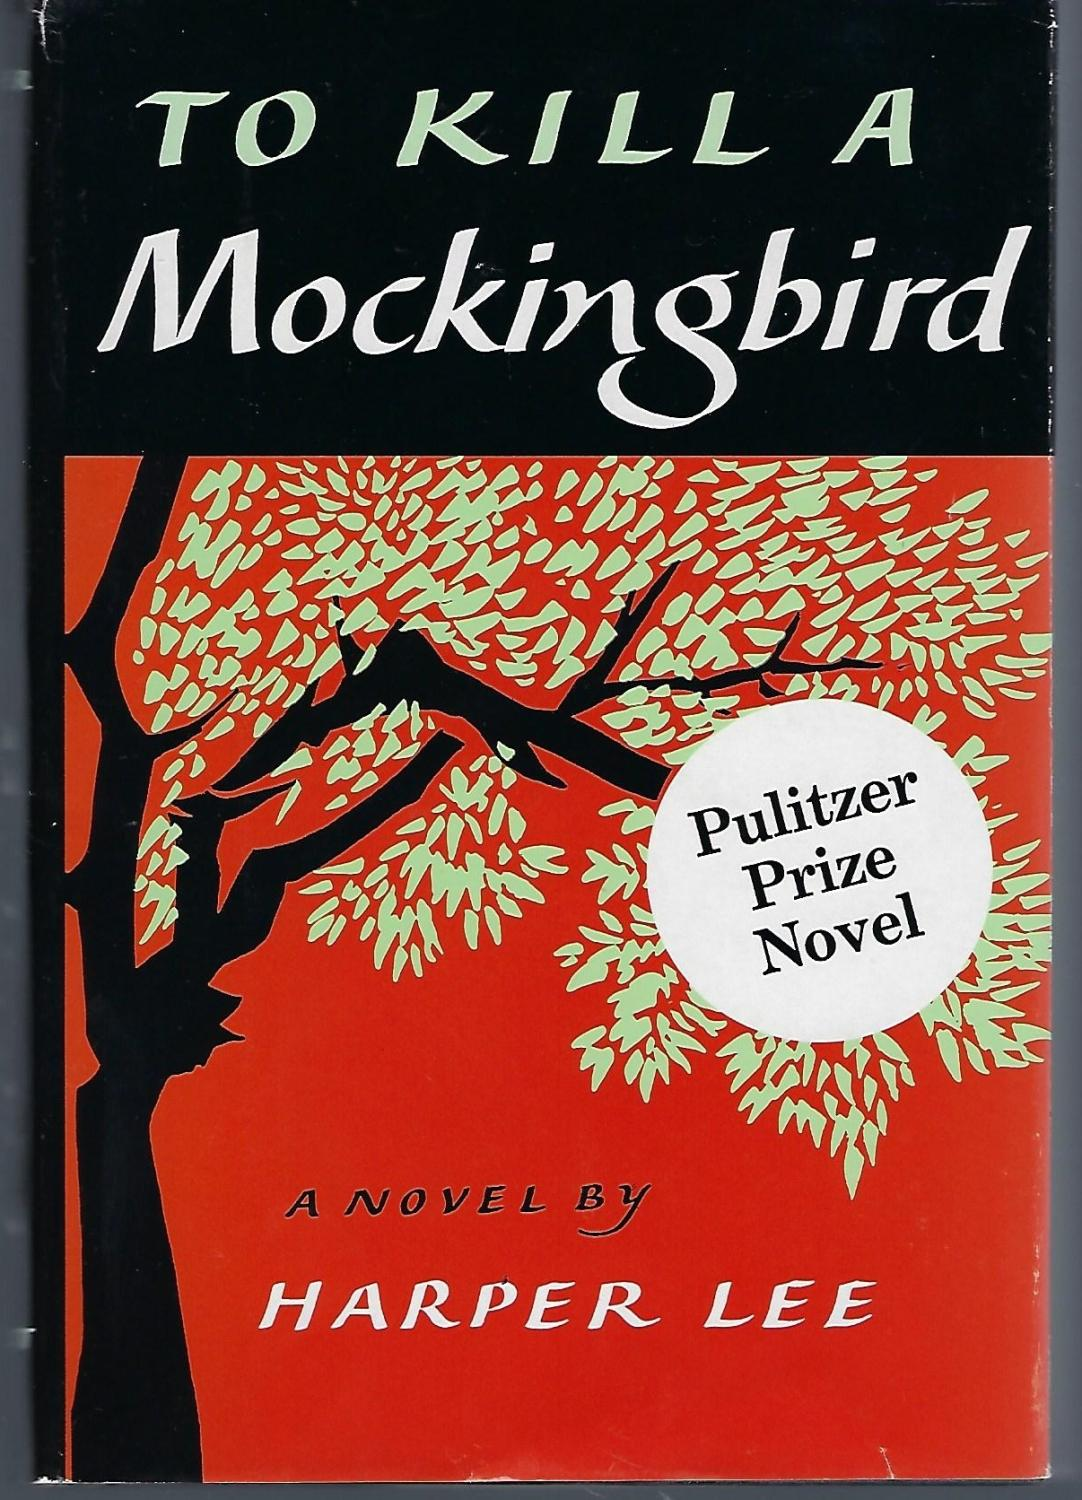 an analysis of racism and prejudice in the novel to kill a mocking bird by harper lee In the novel to kill a mockingbird, harper lee isolates characters and depicts ways prejudice is used she also demonstrates the evils of prejudice and the negative.